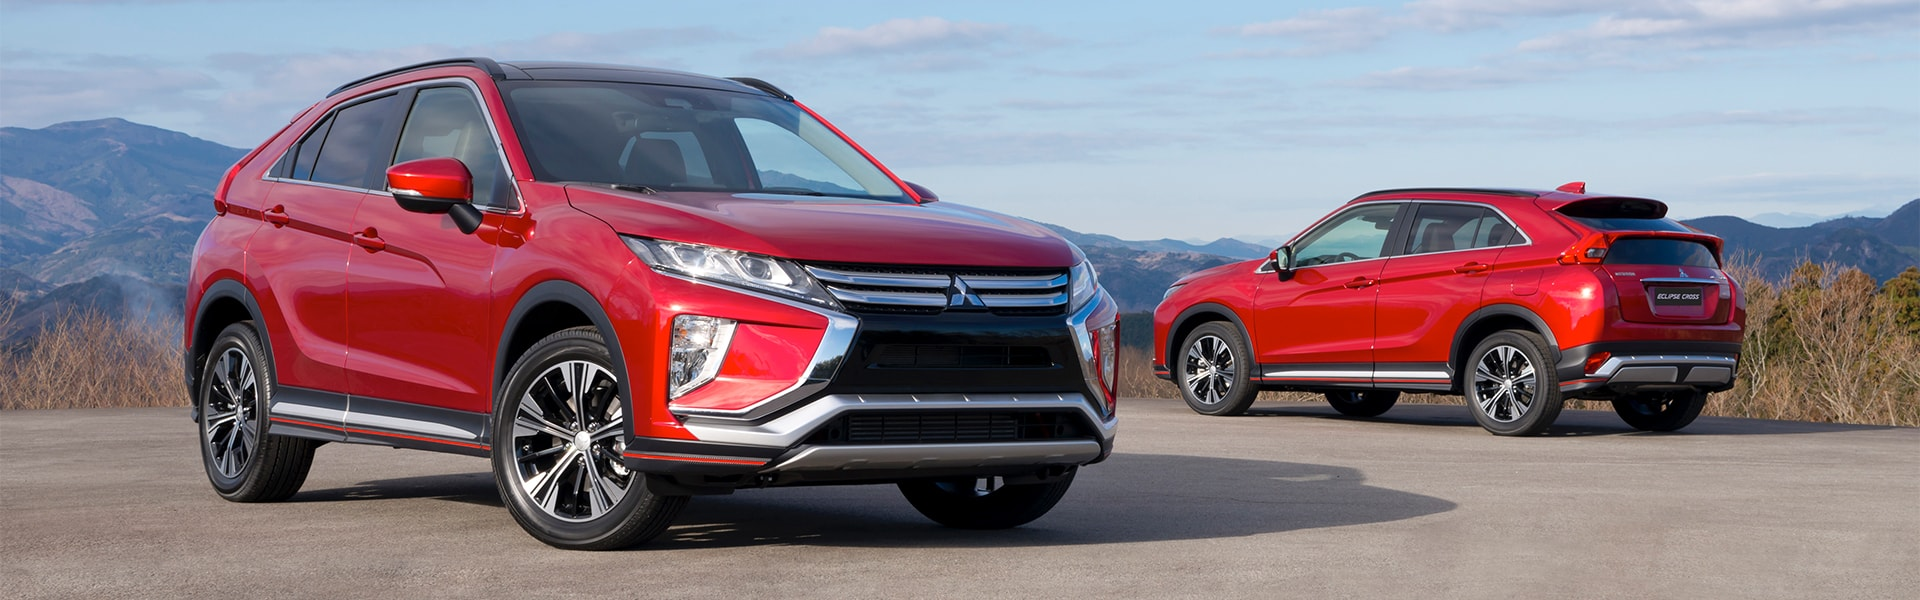 Experience the 2018 Mitsubishi Eclipse Cross | Mitsubishi Motors